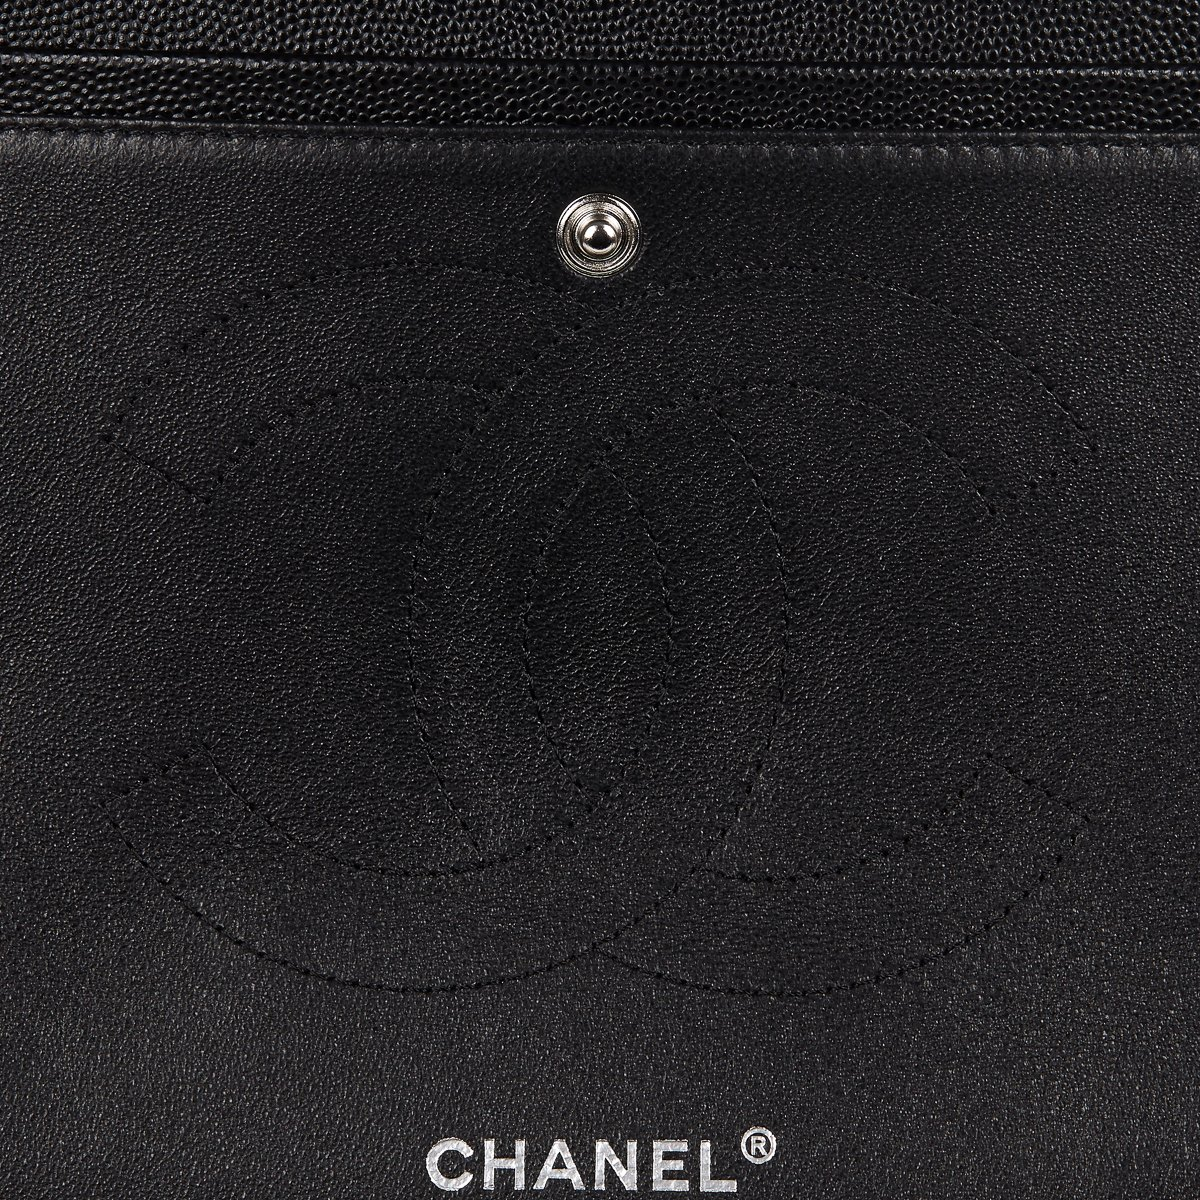 chanel jumbo classic double flap bag 2016 cb097 second hand handbags. Black Bedroom Furniture Sets. Home Design Ideas